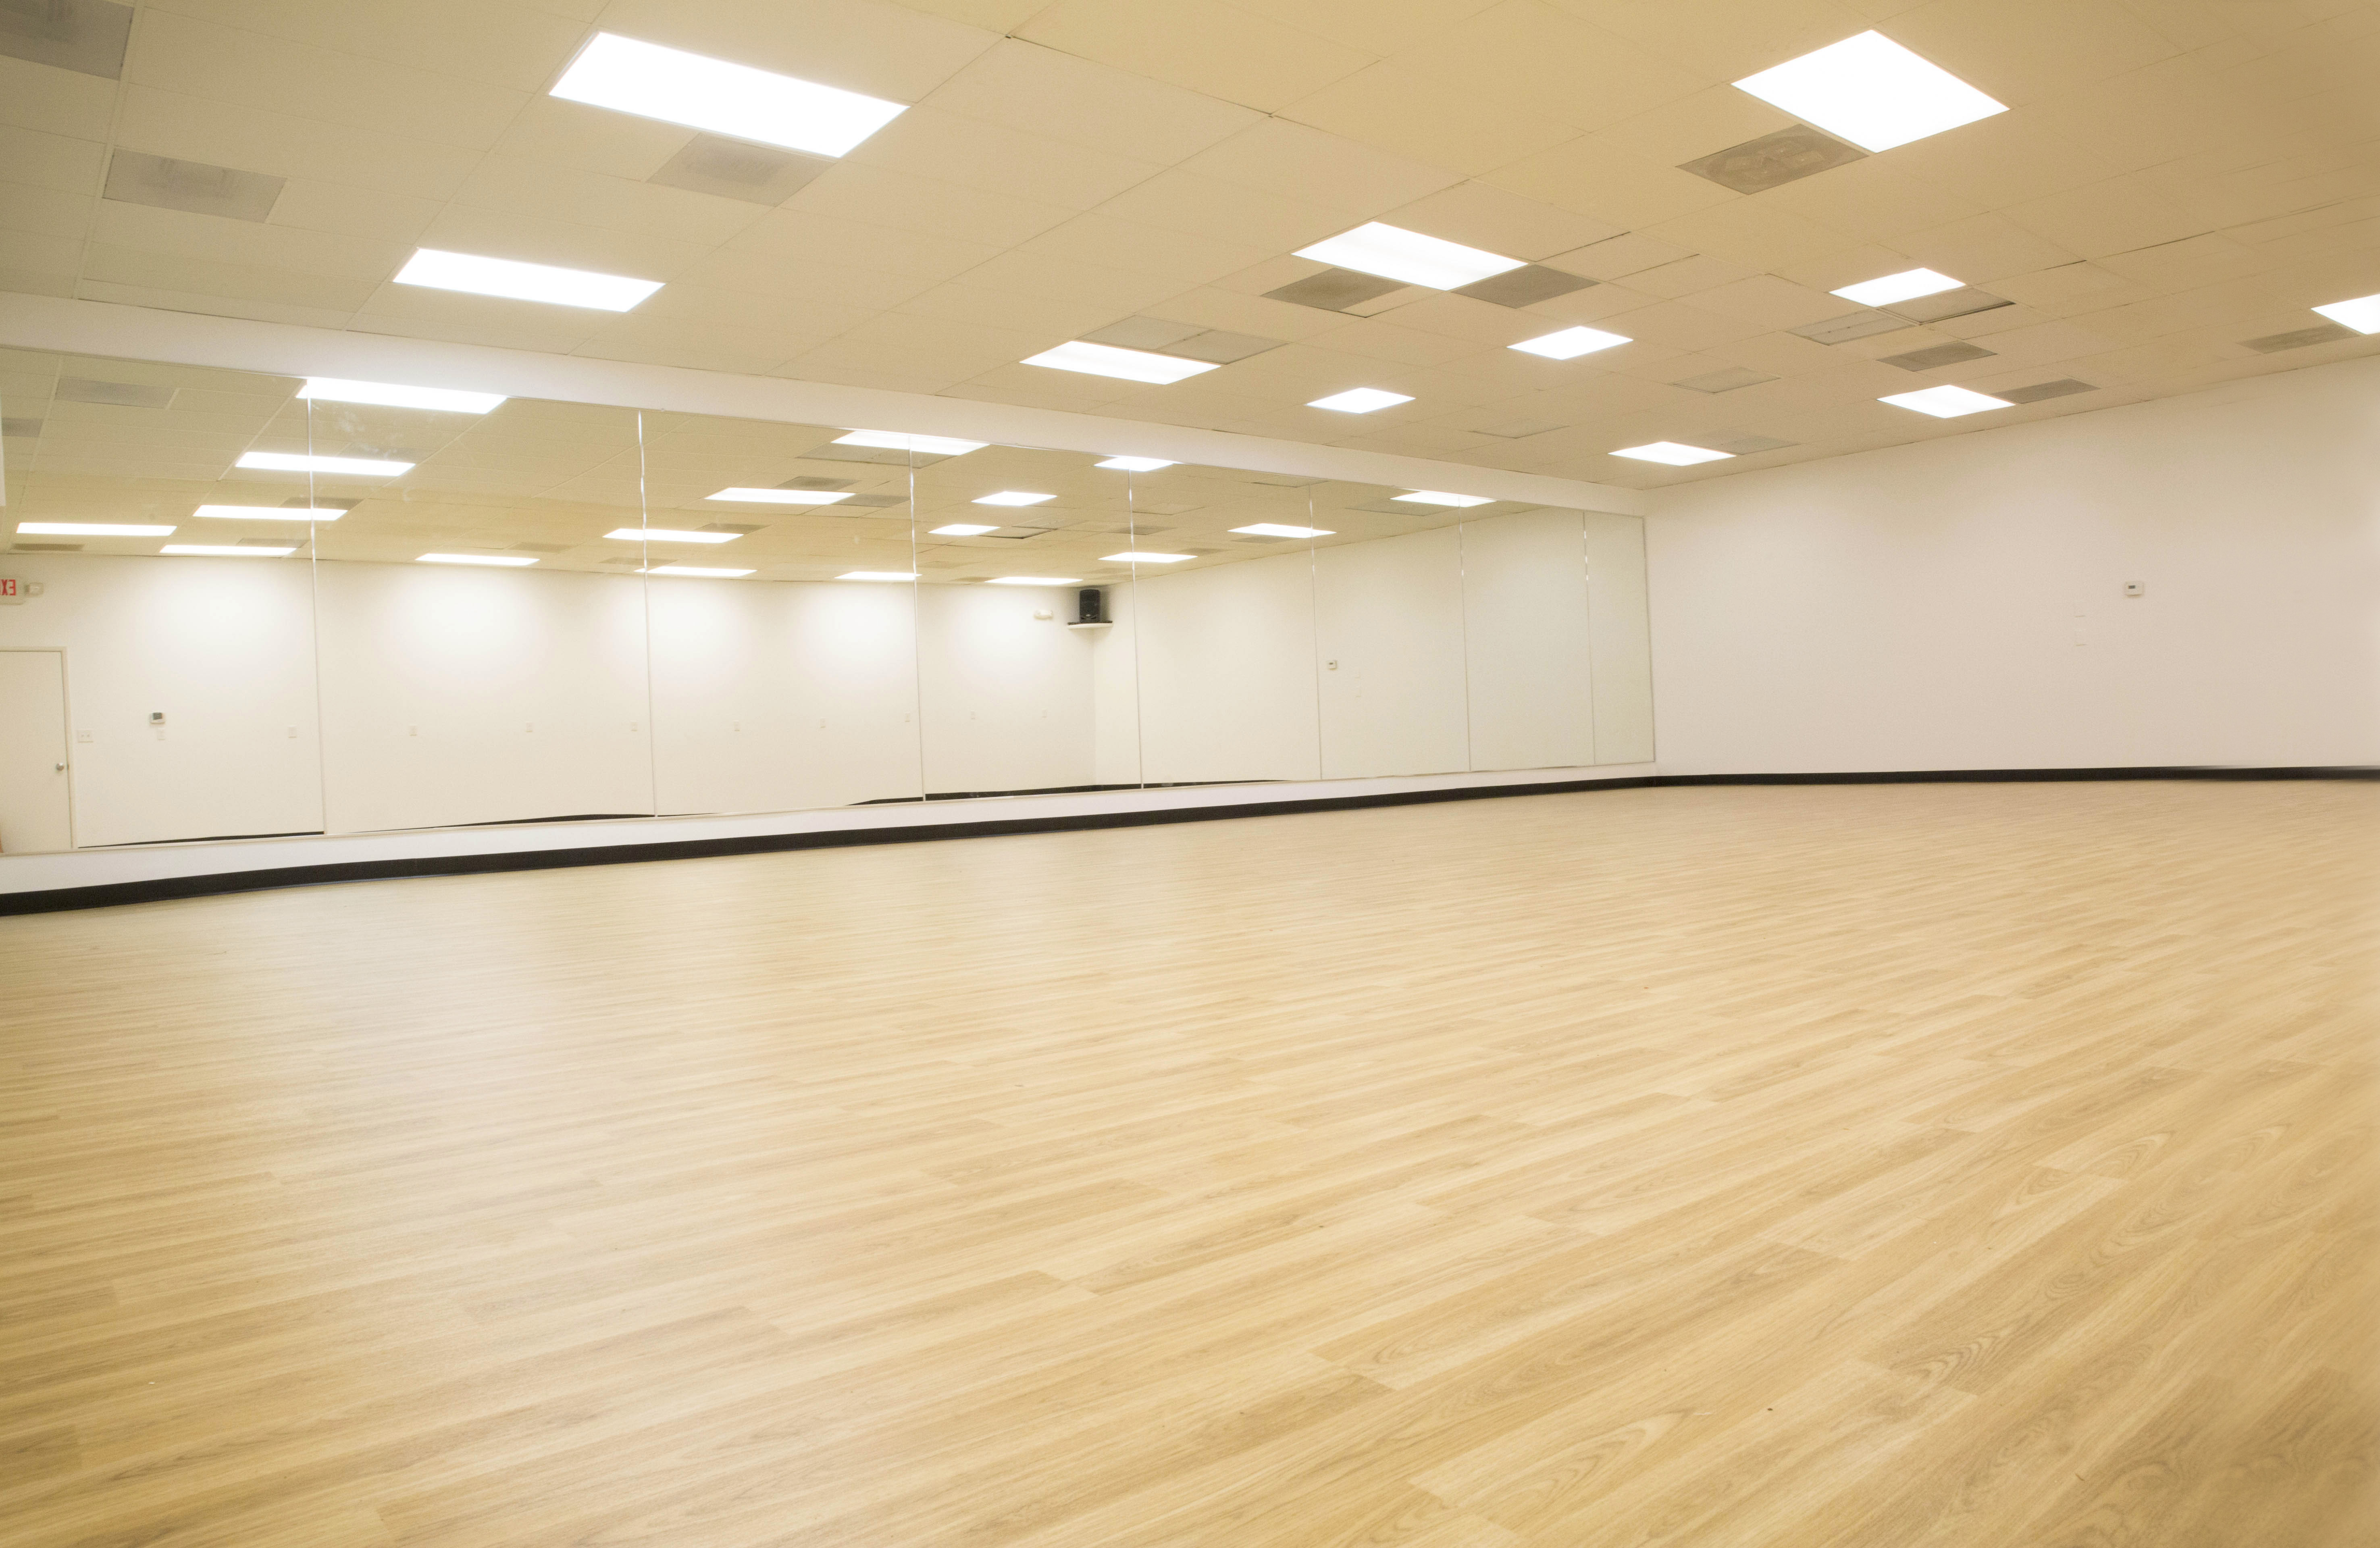 The studio elite dance and performing arts center for Hardwood floors 1500 square feet